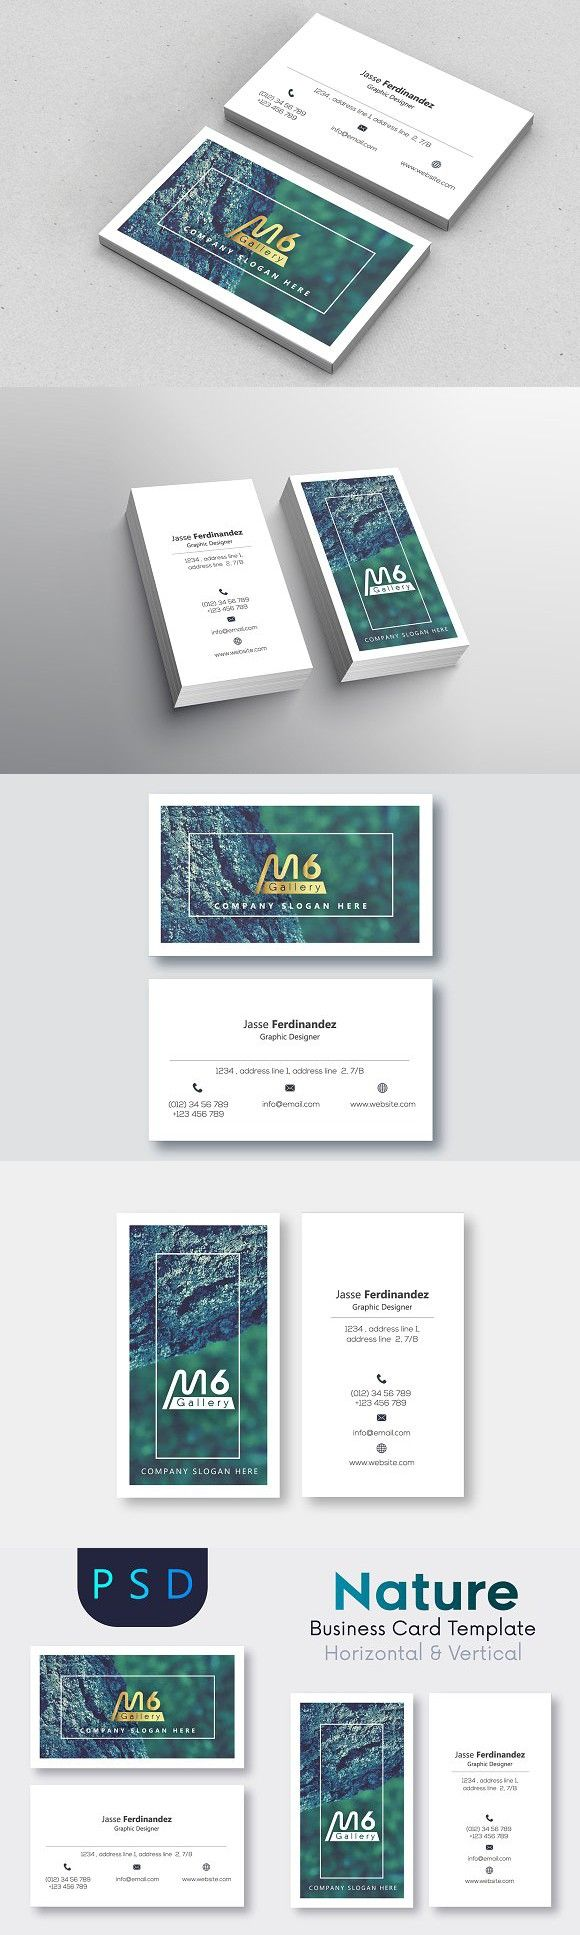 Nature Business Card Template- S11 | Card templates, Business cards ...